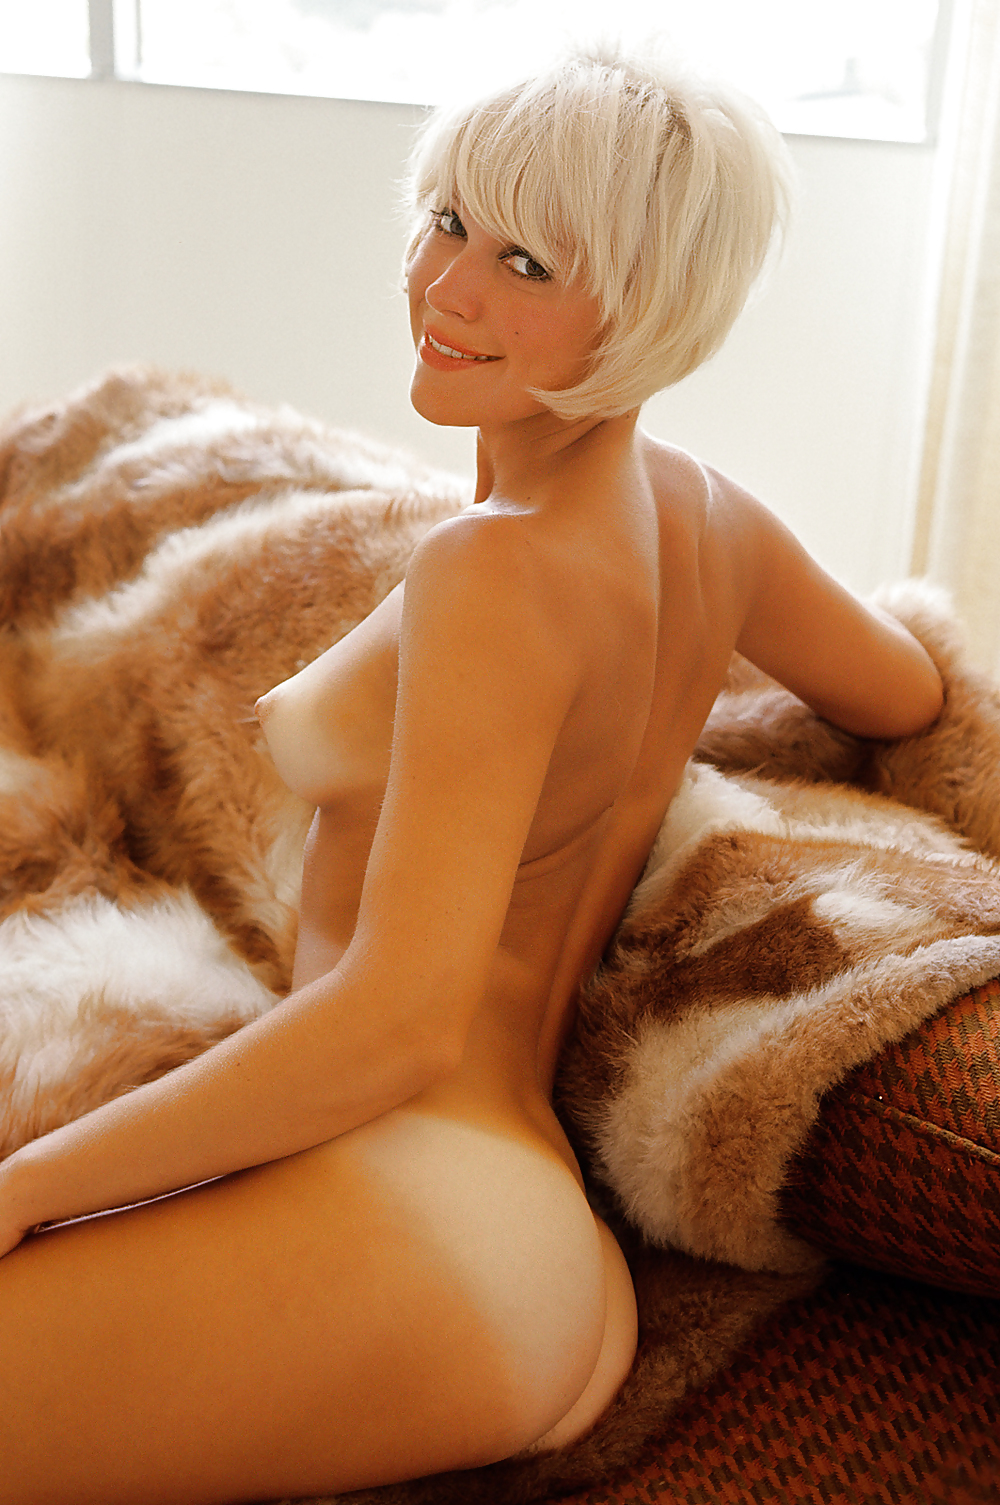 nudes-woman-short-hair-blonde